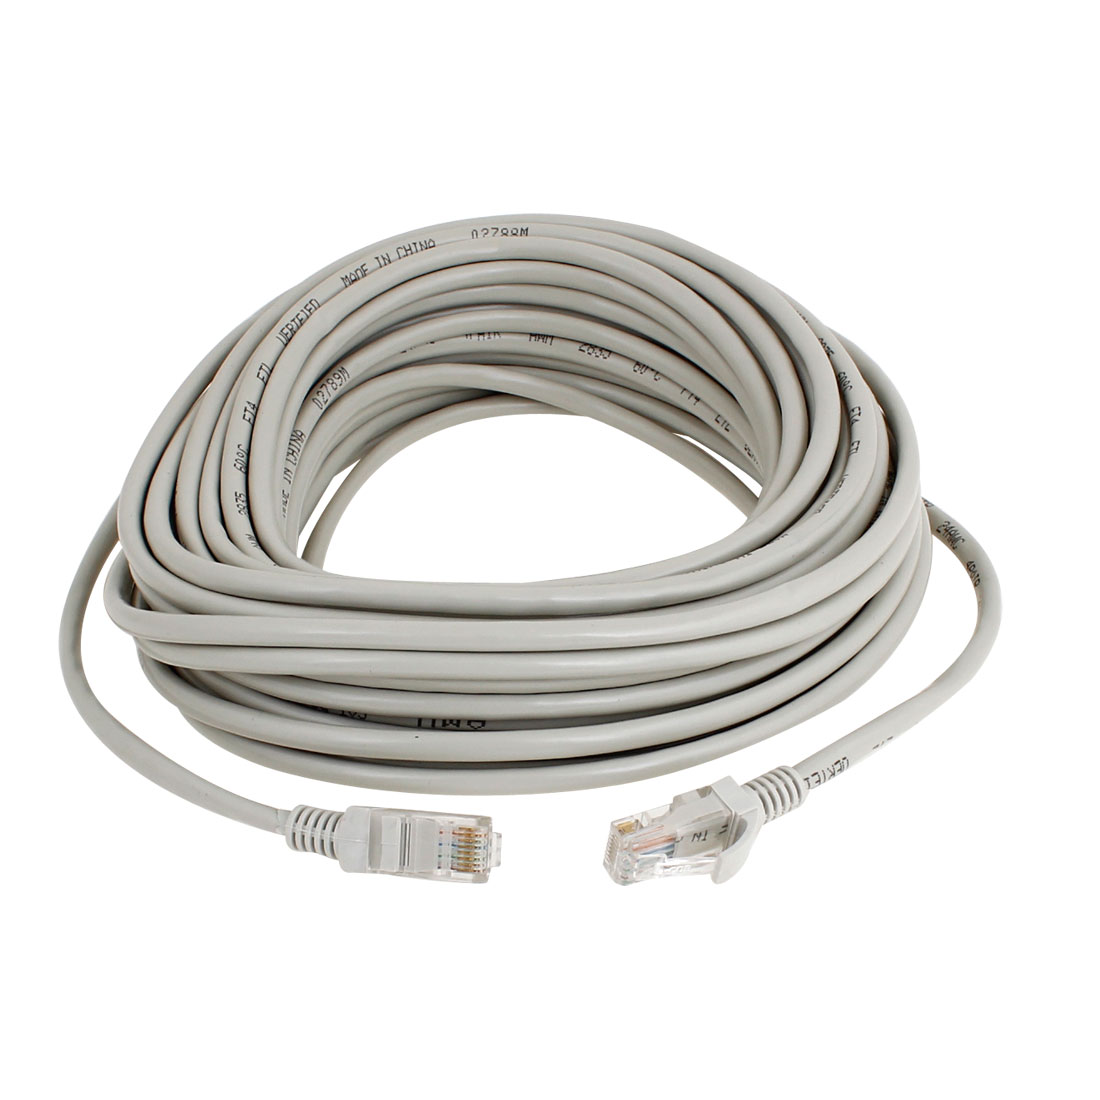 49.2 ft RJ45 Cat5e UTP Ethernet LAN Network Patch Cable Wire Gray 15m